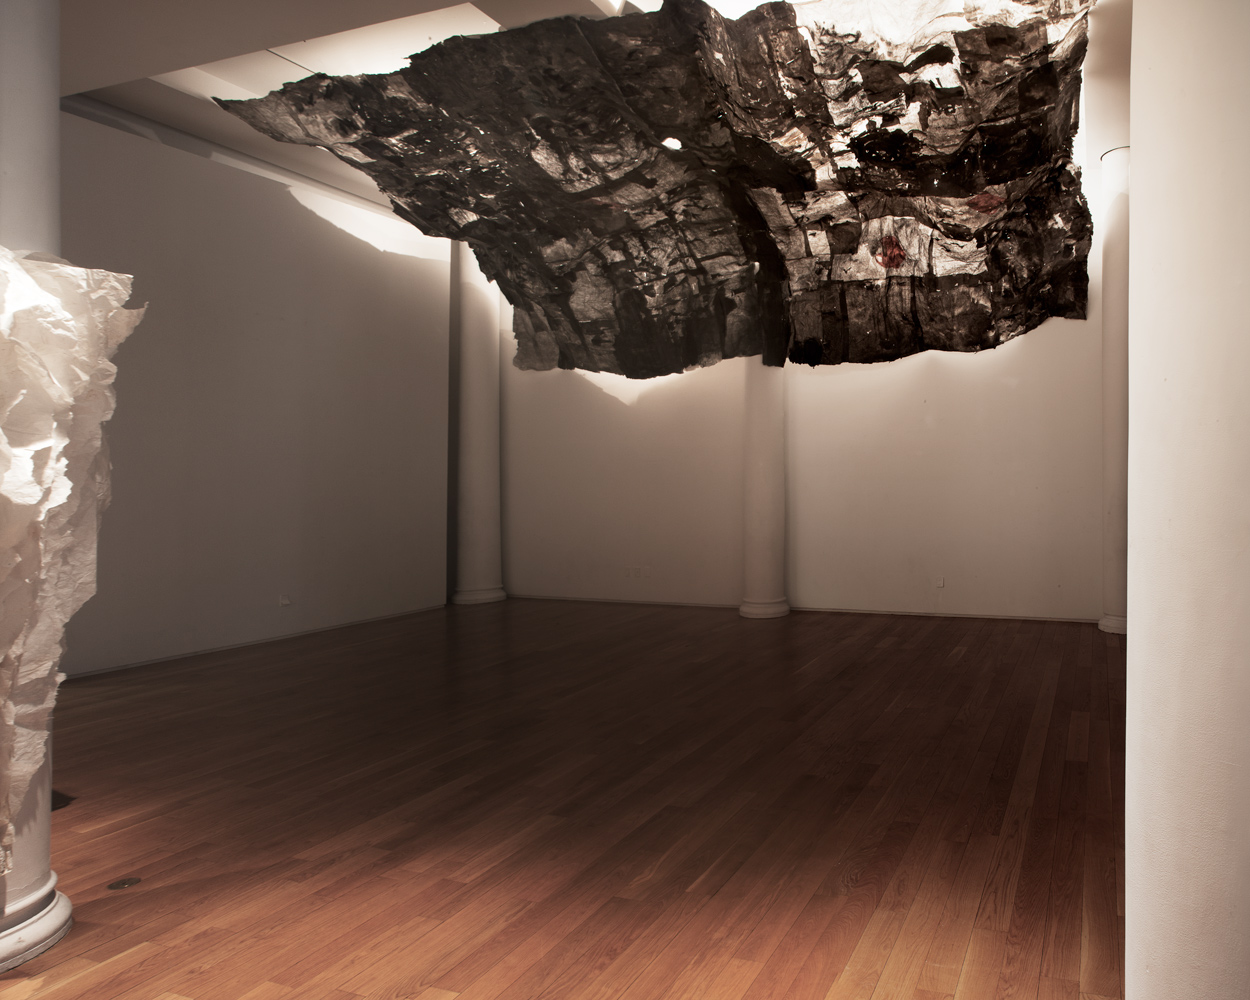 Lin Yan: Dispelling the Clouds installation view. Photography by Jiaxi Yang, courtesy Fou Gallery.